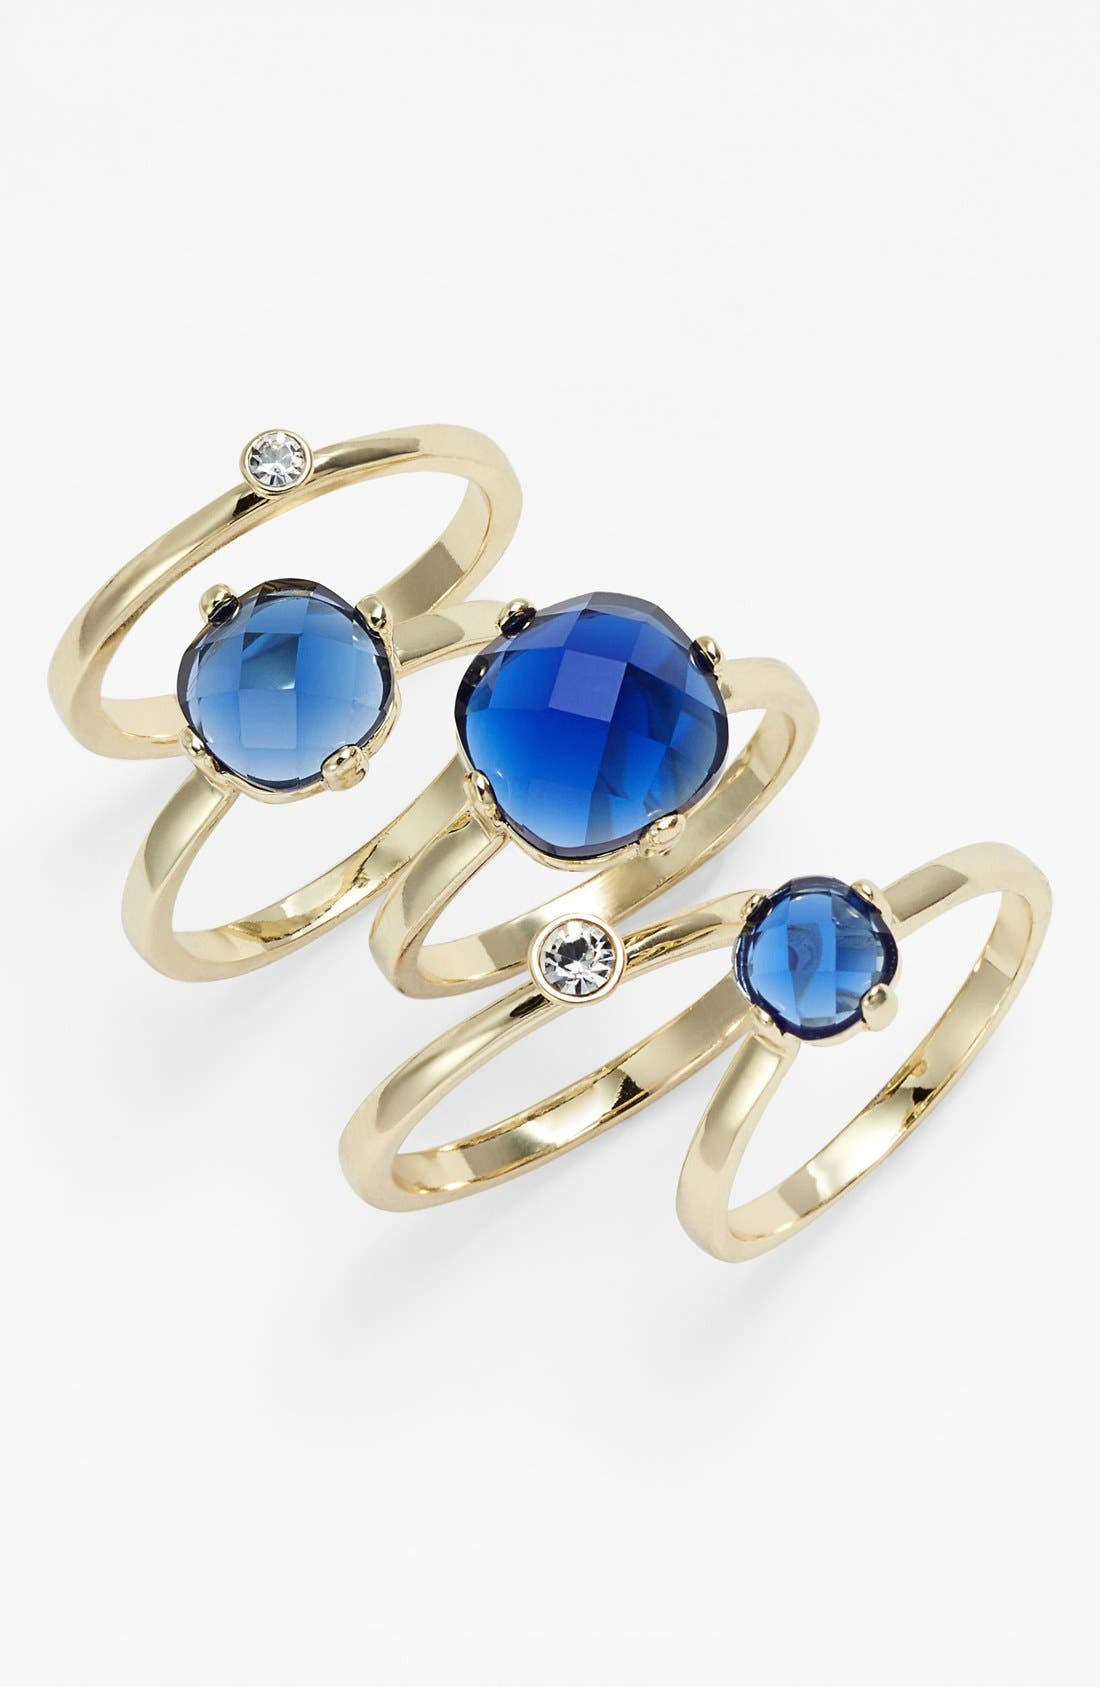 Main Image - Ariella Collection Stackable Rings (Set of 5)